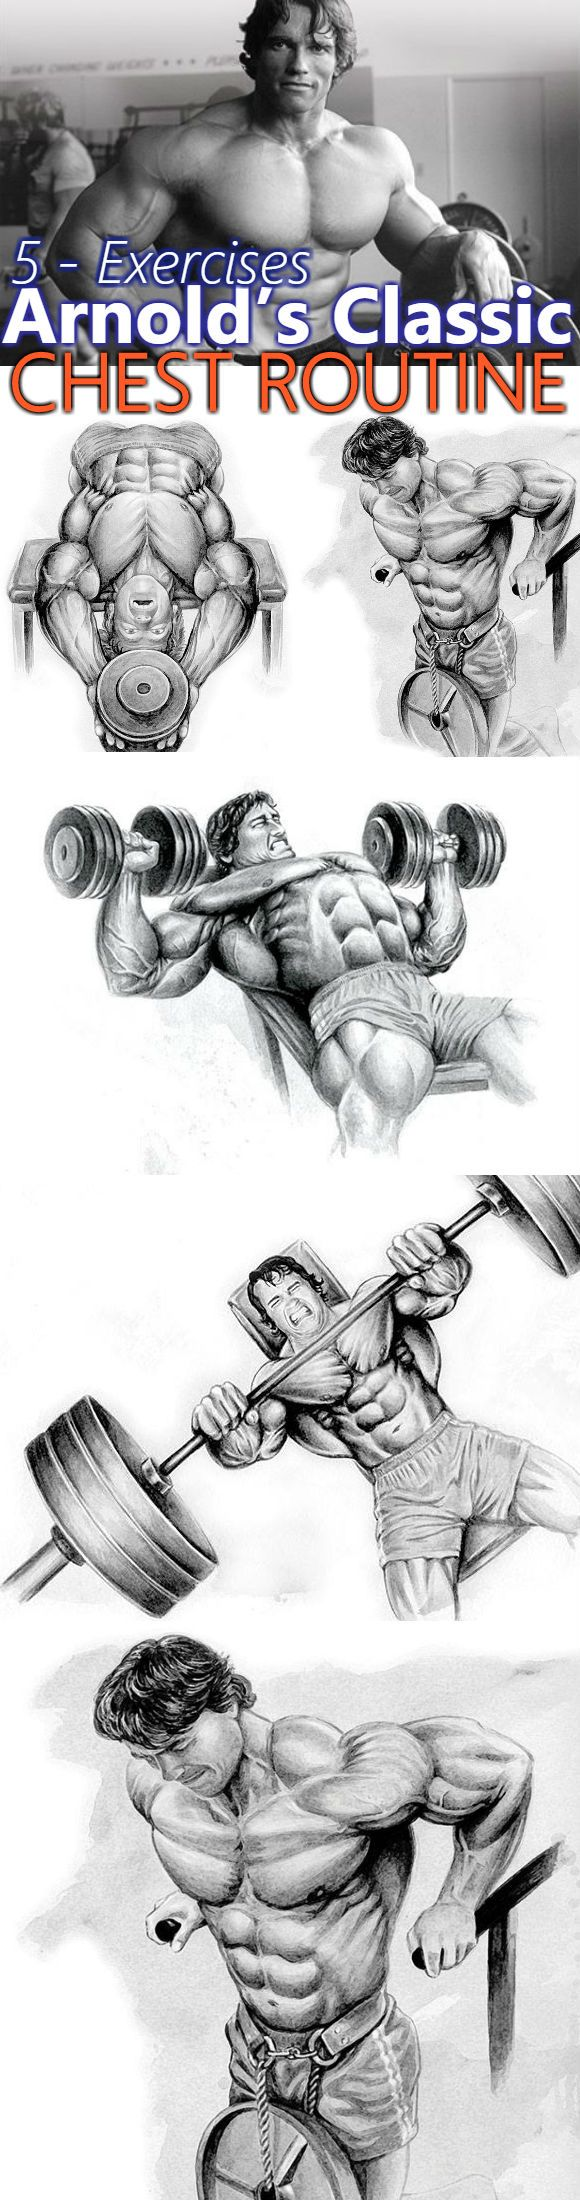 Arnold's Classic 4 Exercise Chest Workout – Lars Richter